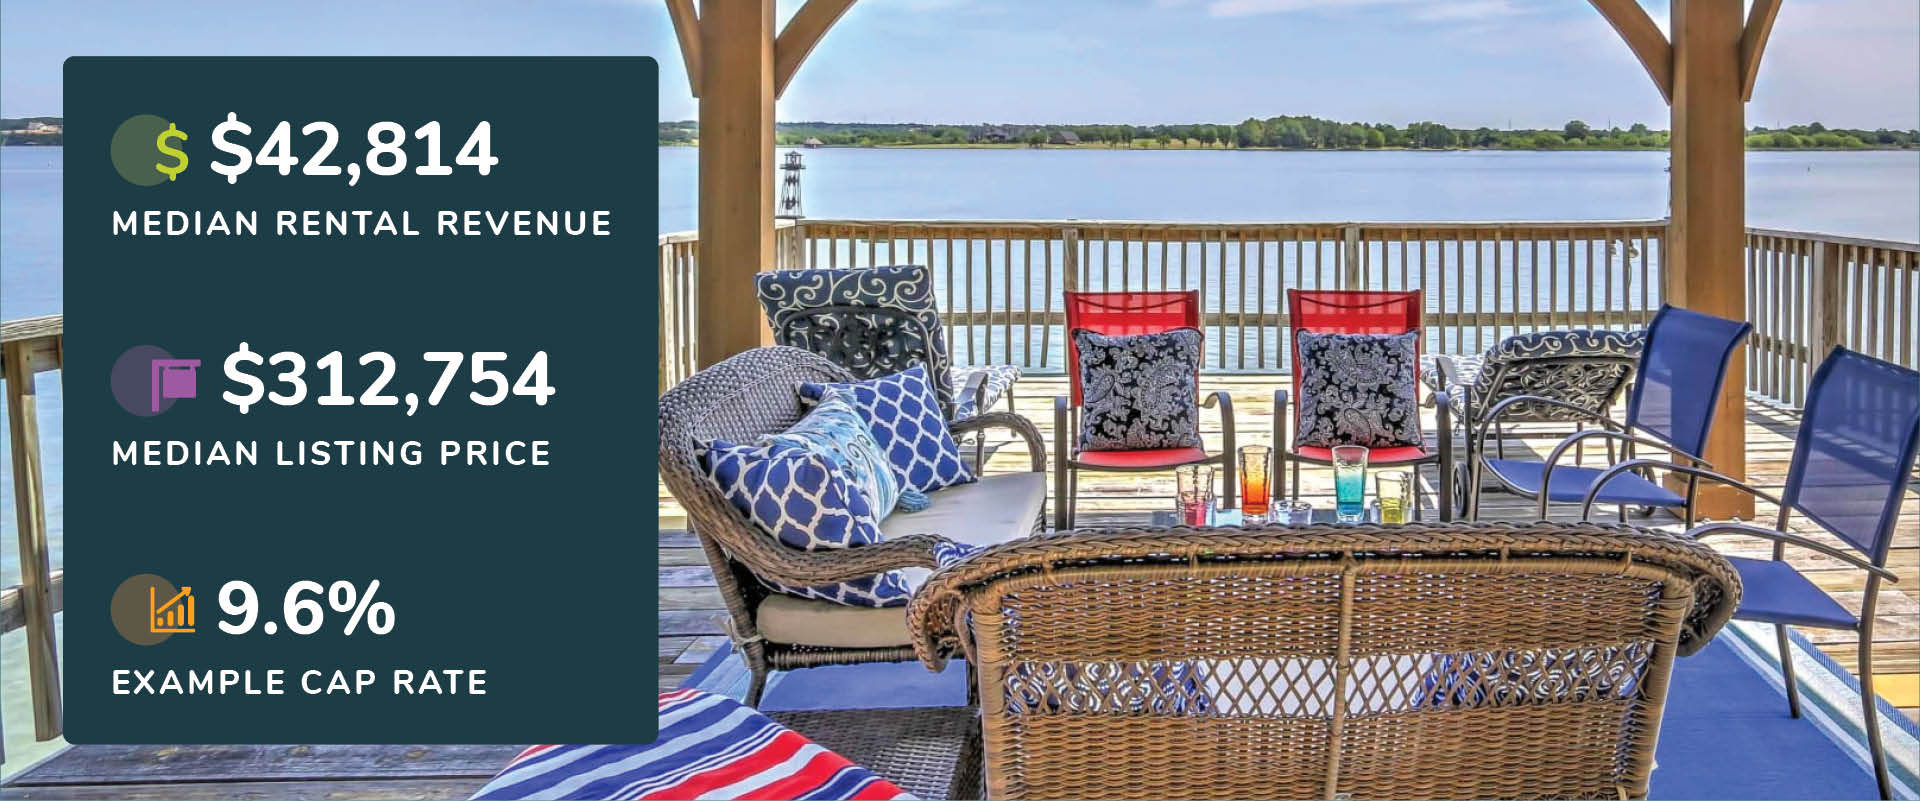 Graphic showing Granbury, Texas rental revenue, listing price, and cap rate with a picture of a patio furniture set on a dock overlooking the lake